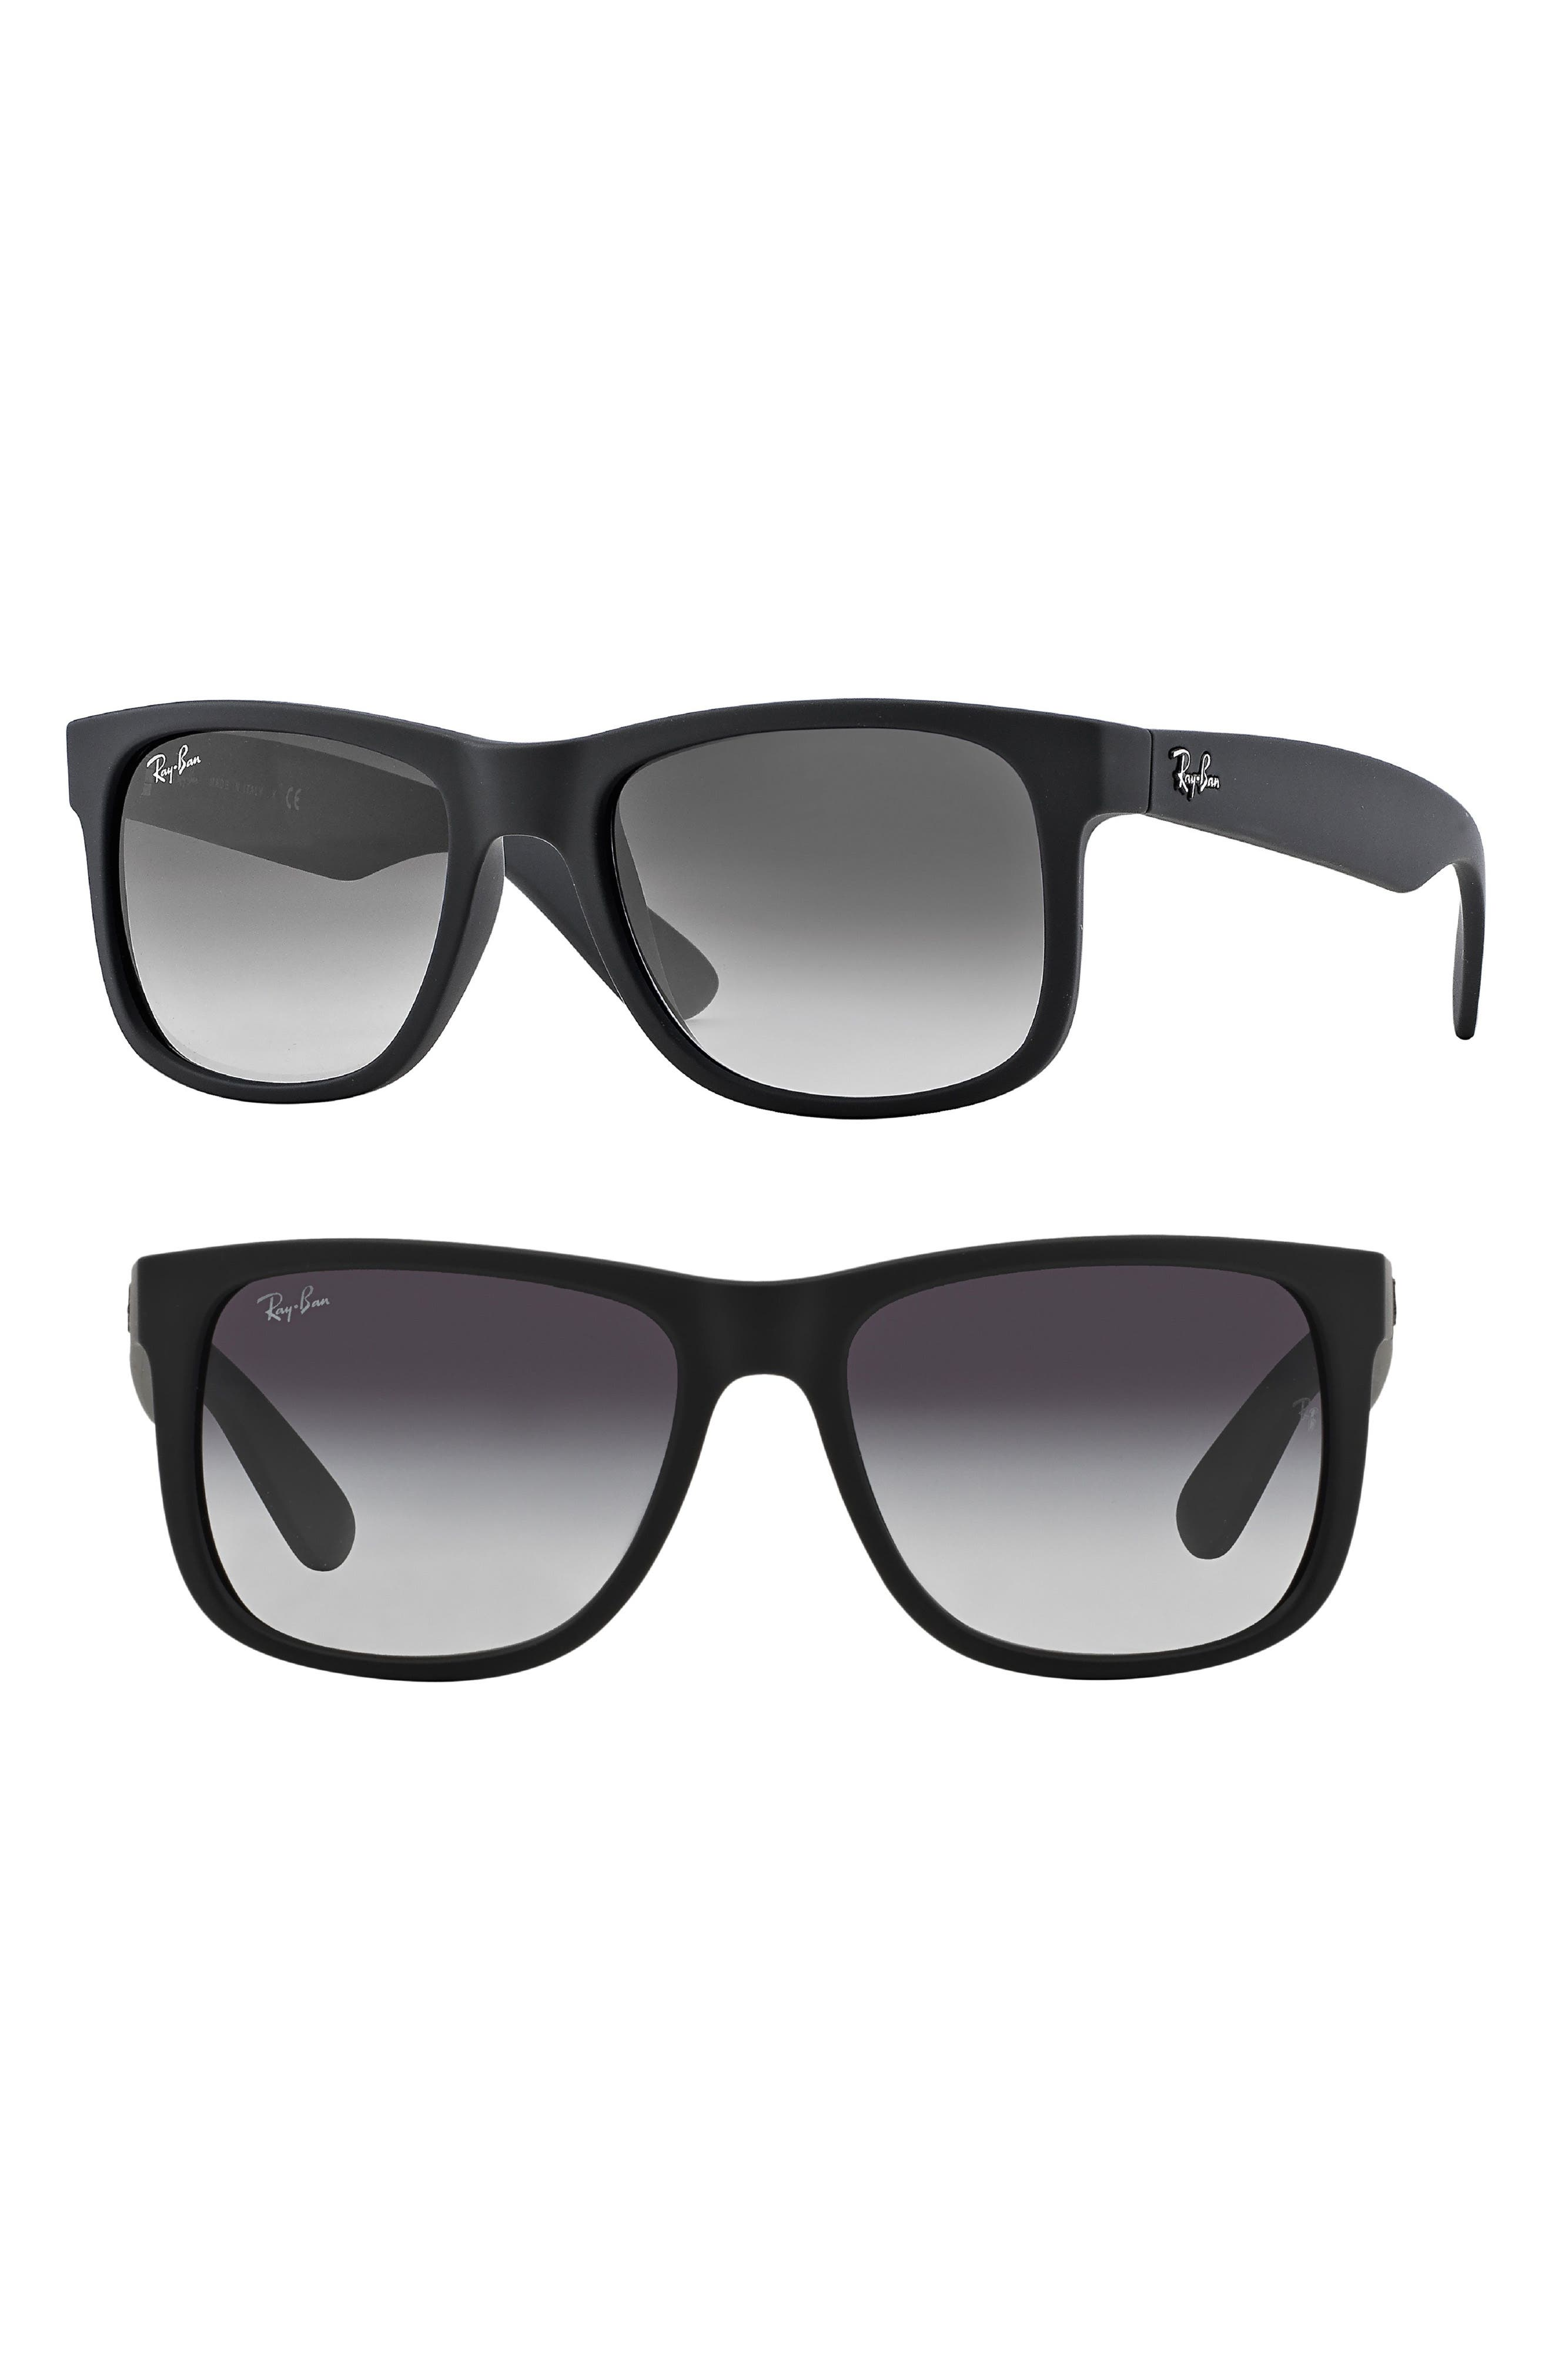 Ray-Ban Youngster 5m Sunglasses - Black